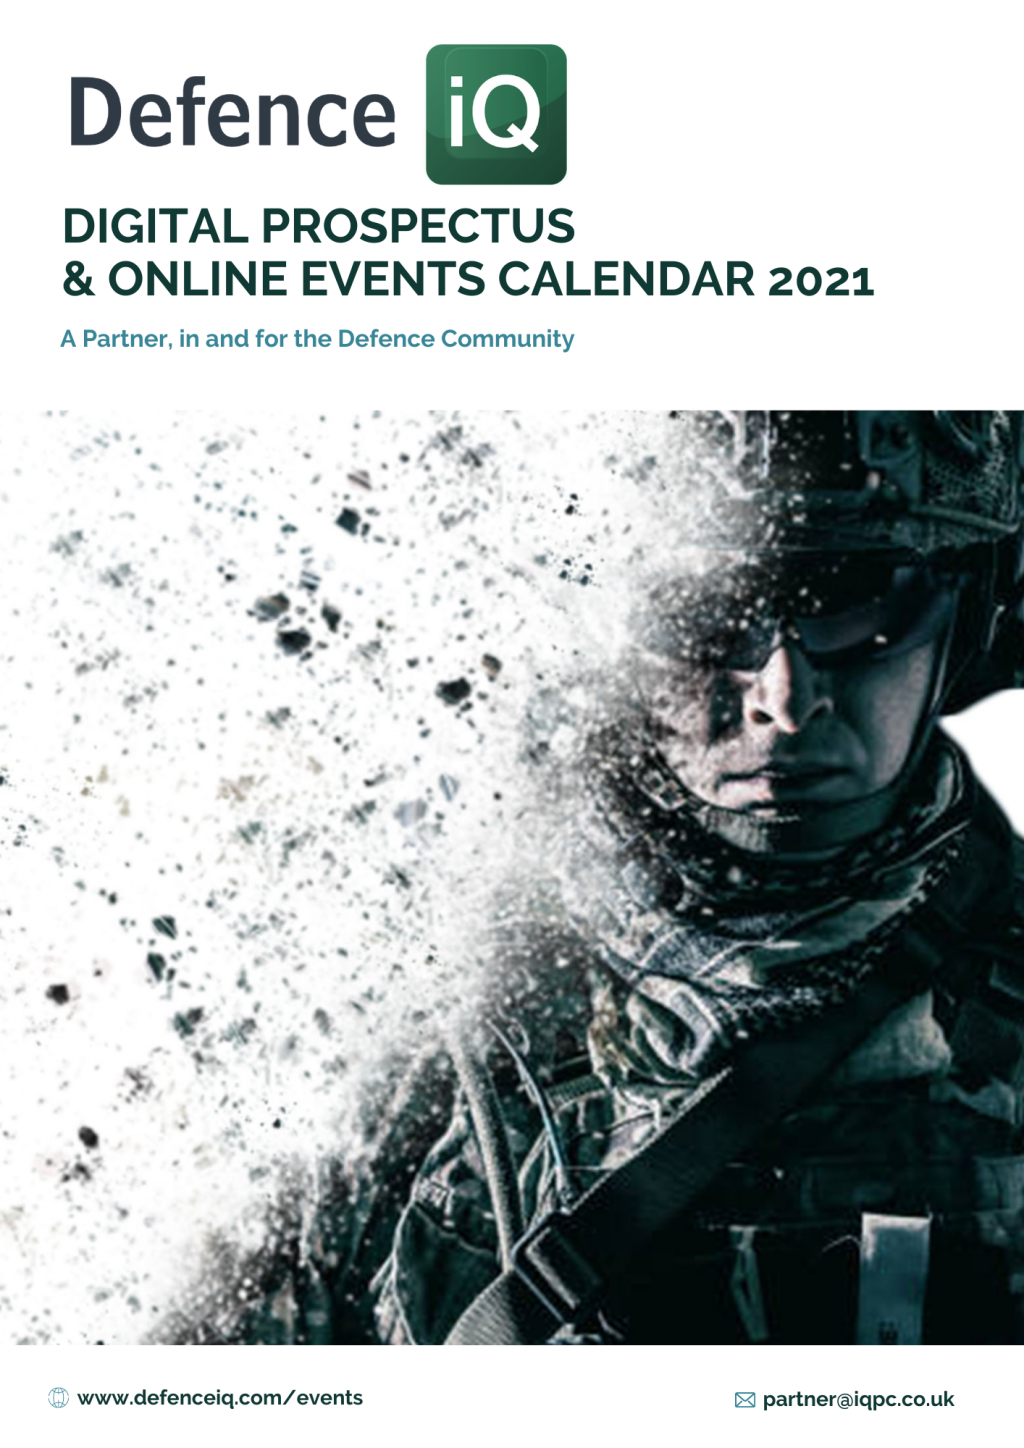 Defence iQ Digital Prospectus and Online Event